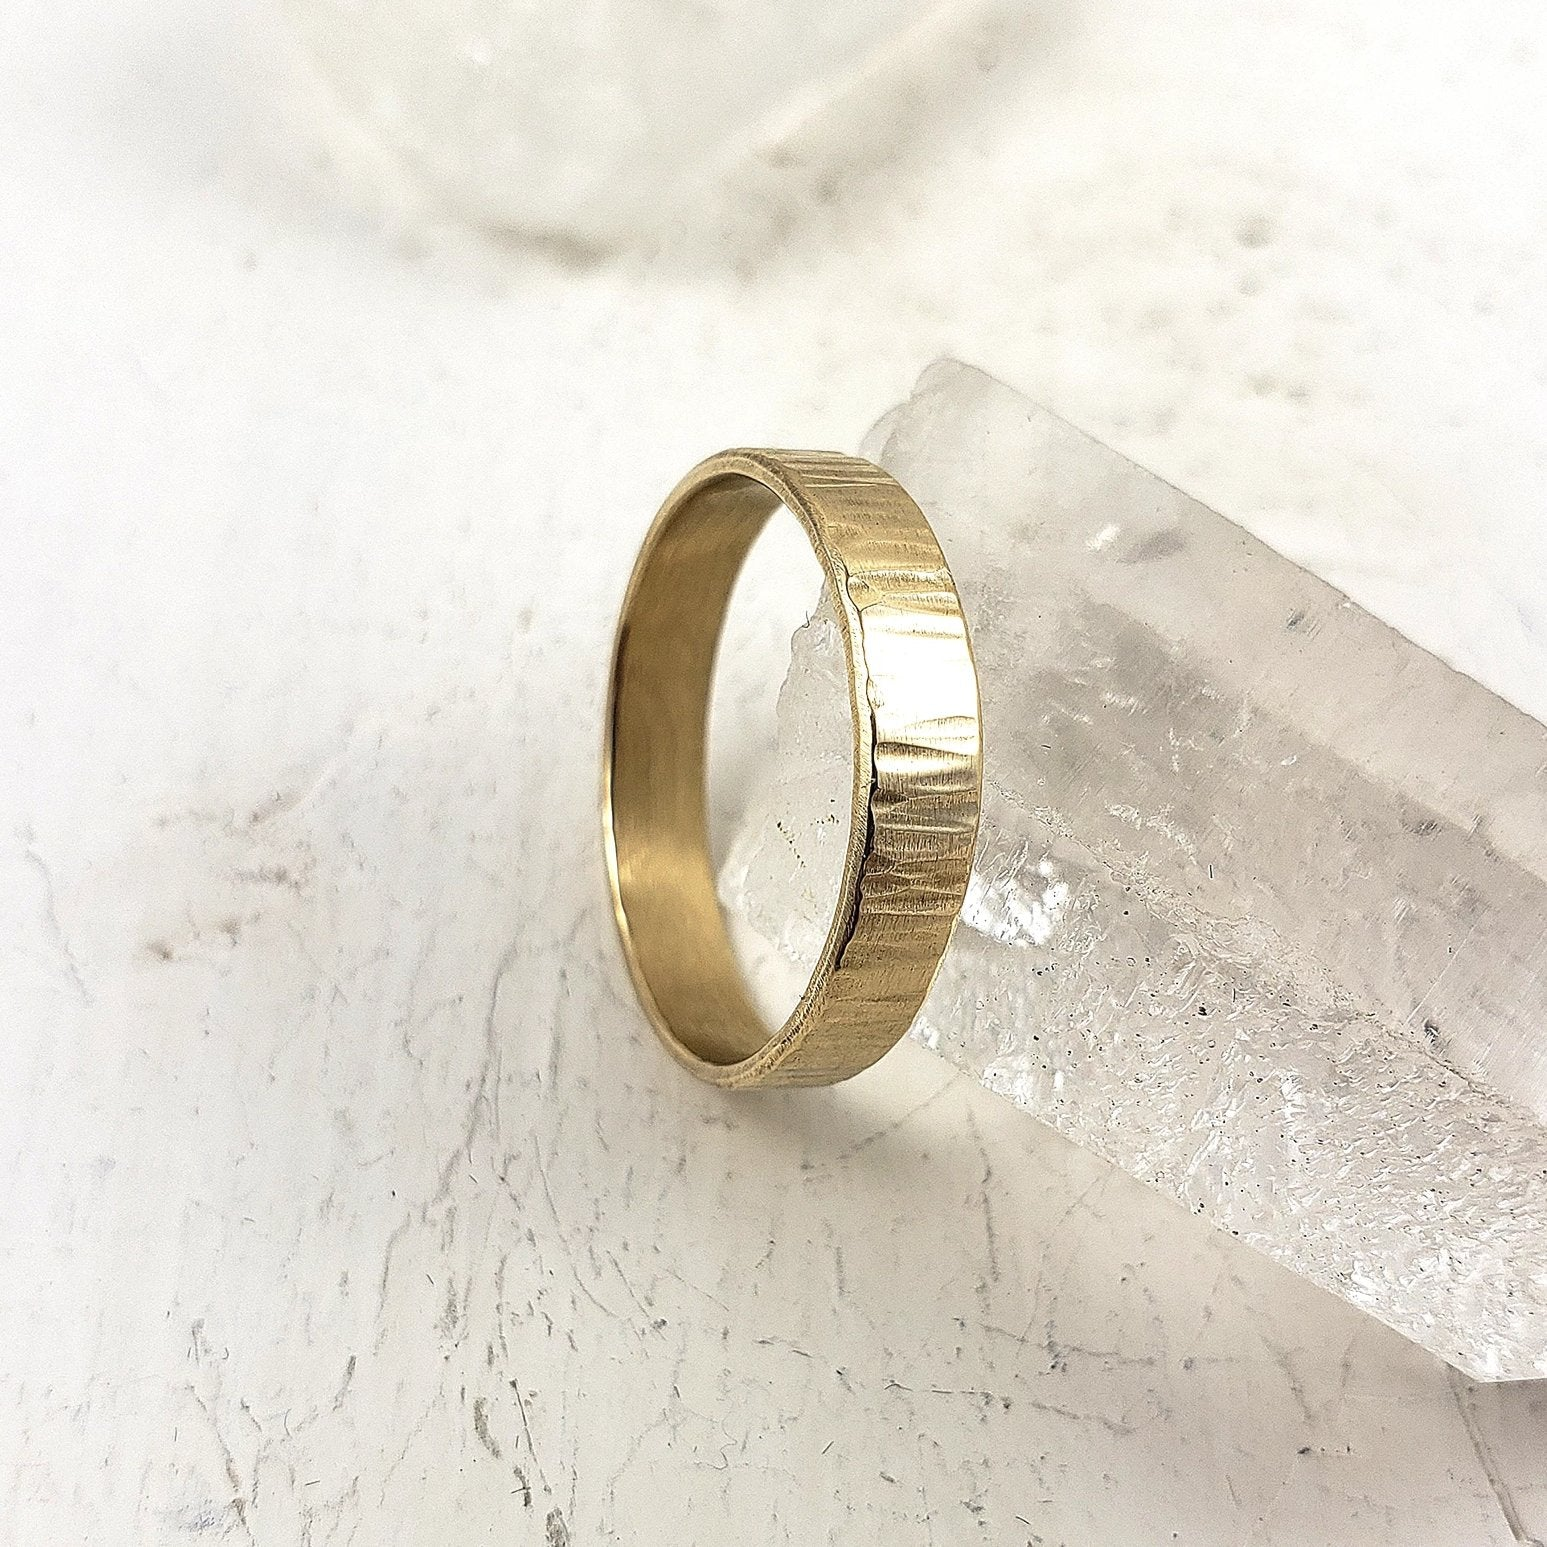 Unisex solid gold wedding band, textured for an artisan yet modern look